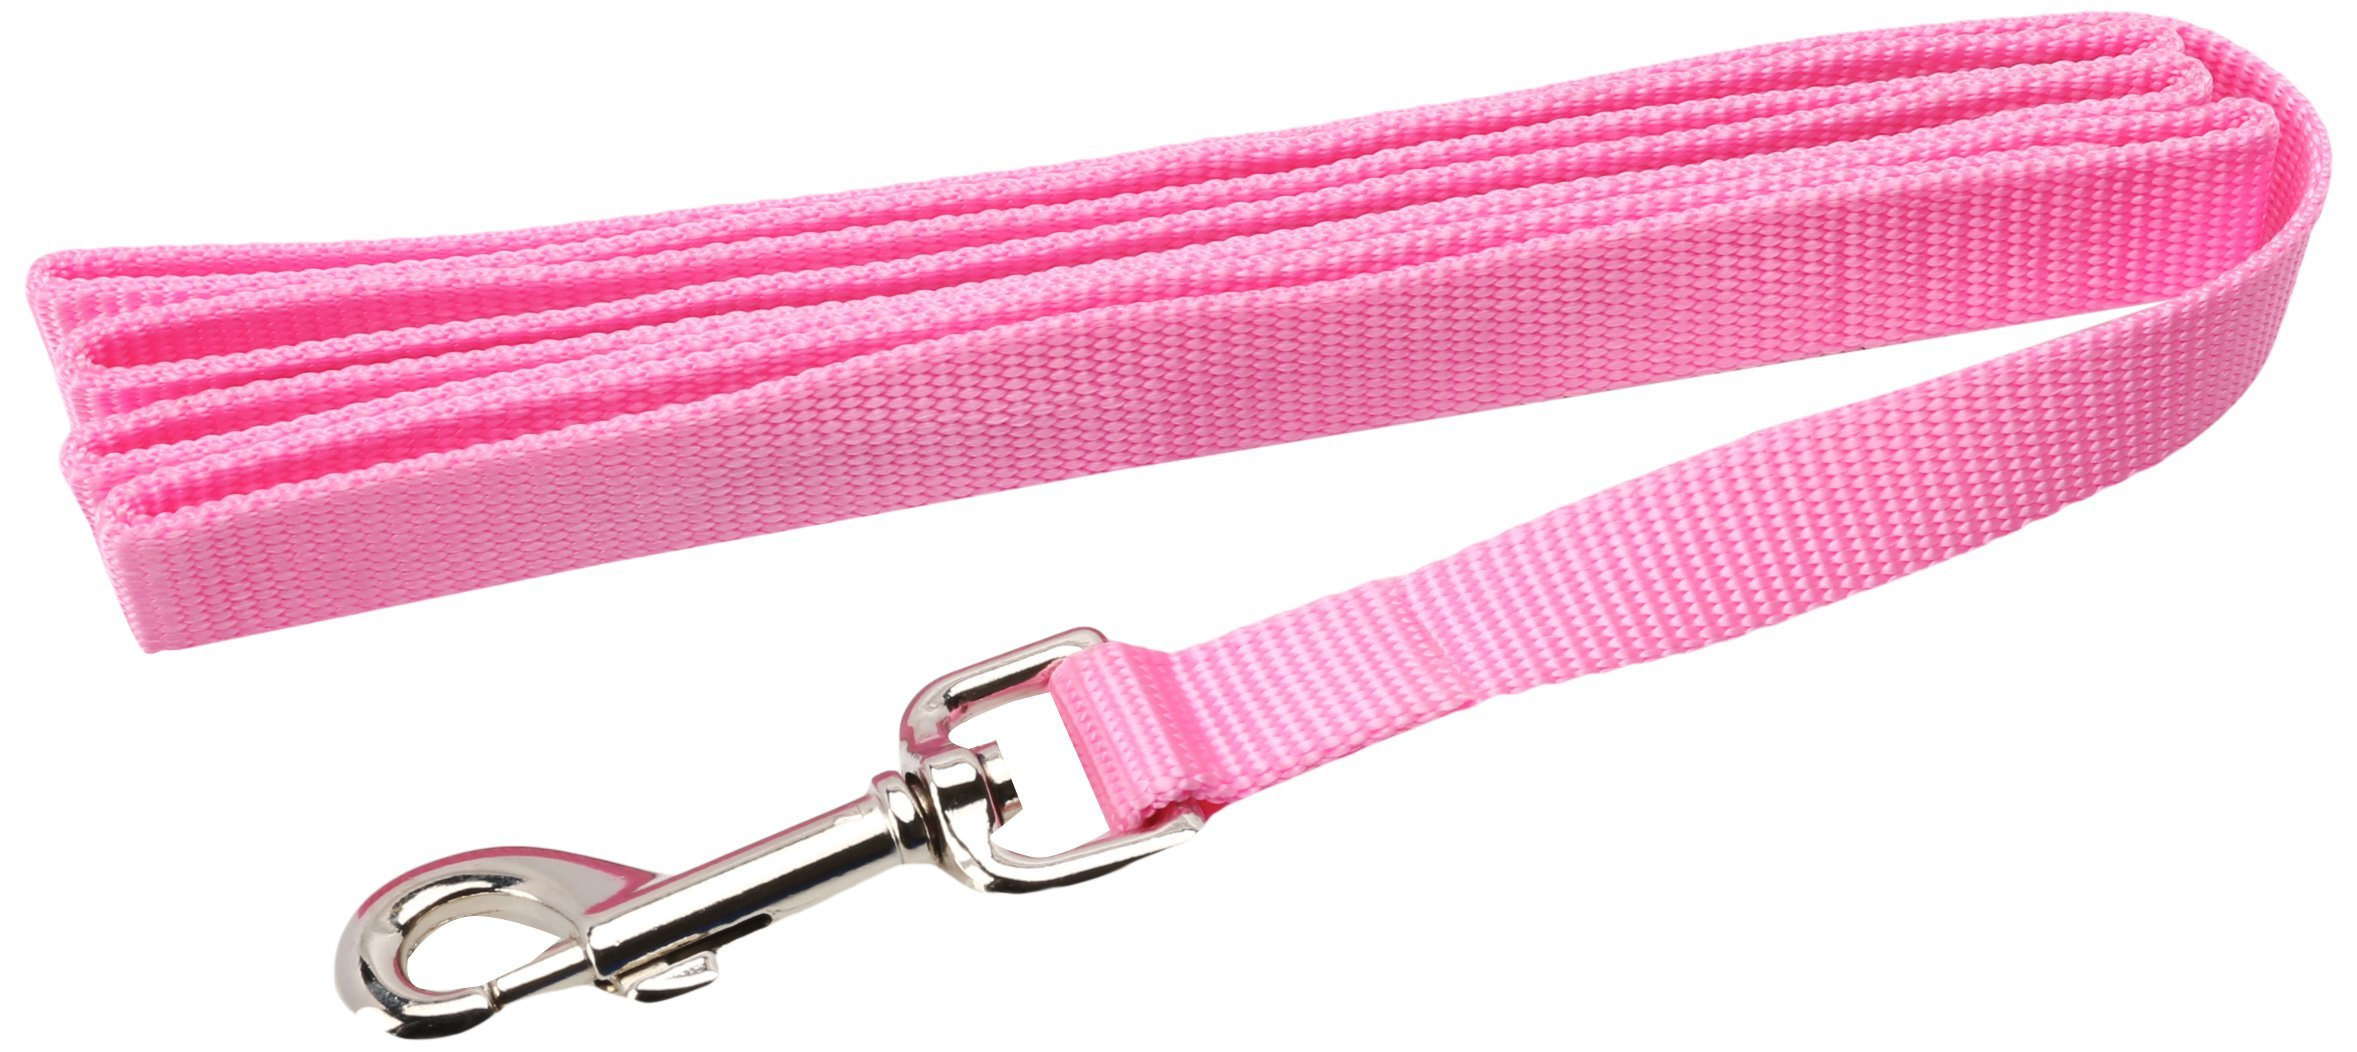 Coastal Pet Products DCP60606PKB Training Collar Lead for Pets, 6 Inch, Bright Pink by Coastal Pet